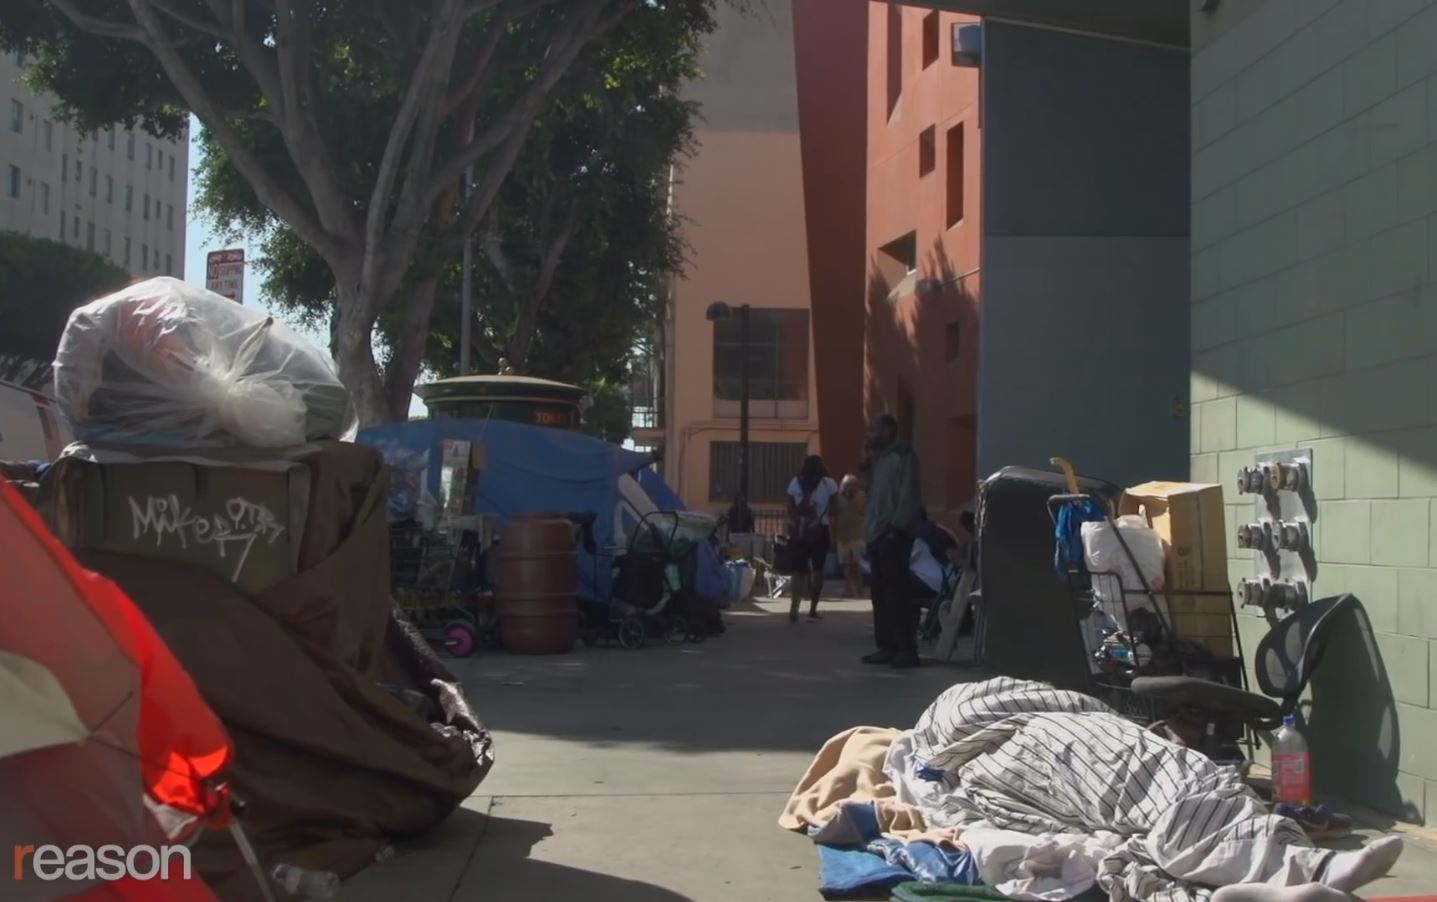 Homelessness in LA